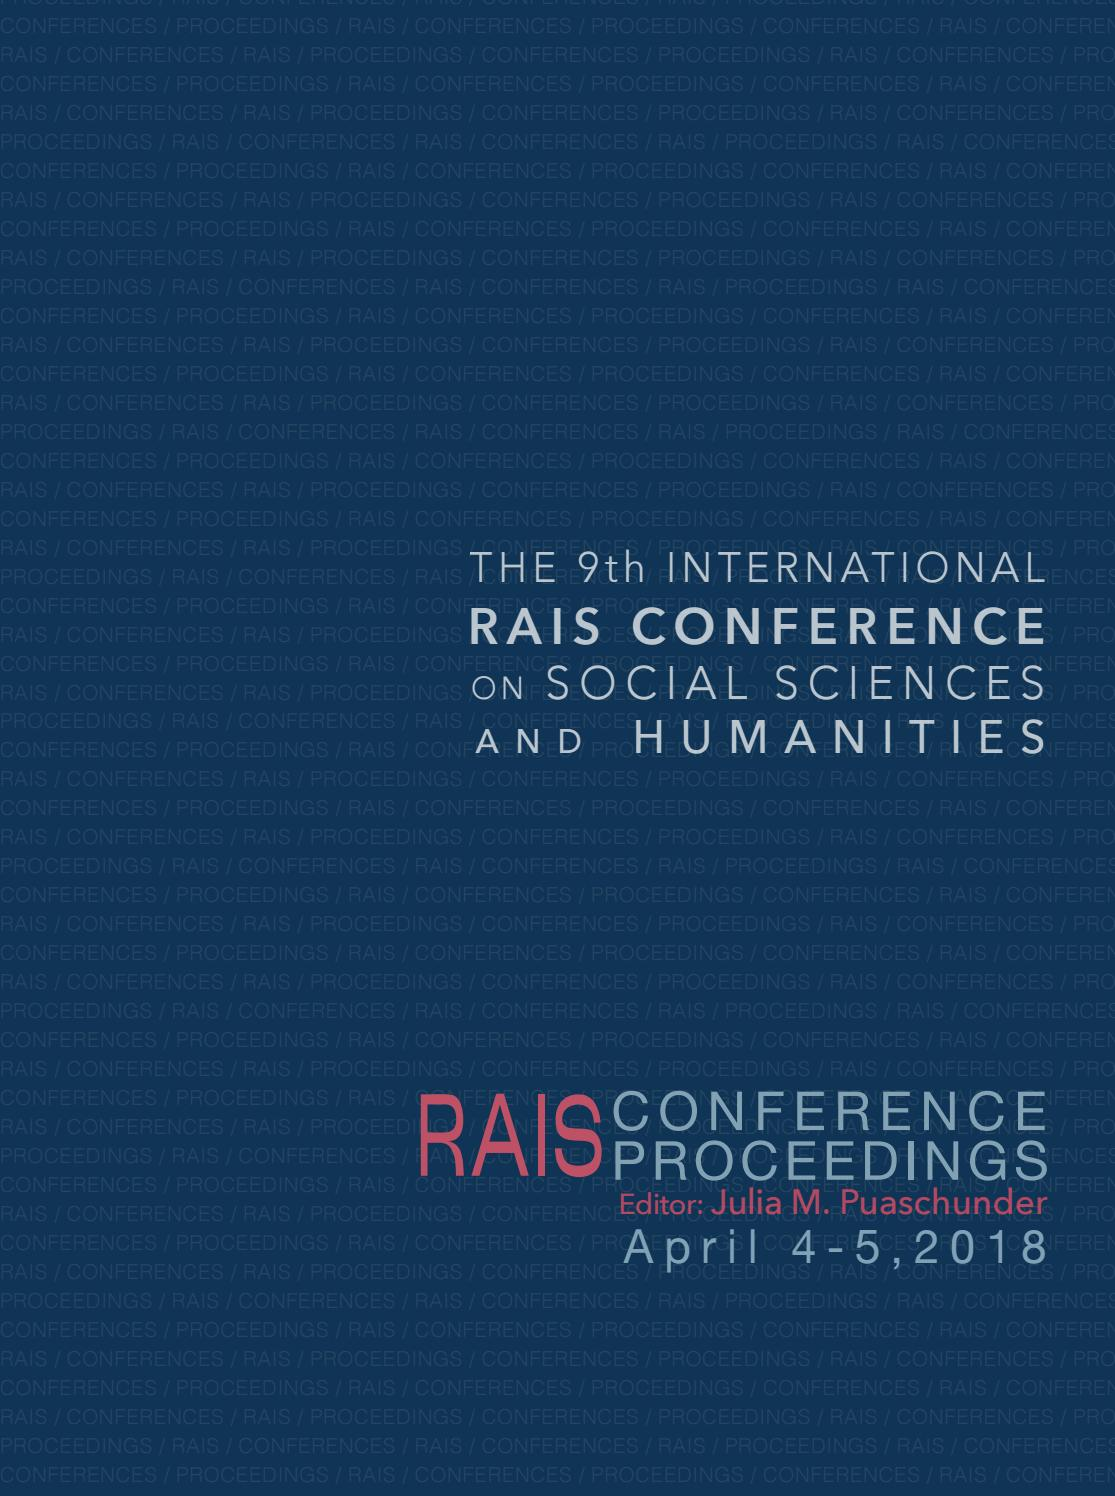 acee29bda8 RAIS Conference Proceedings - The 9th International International  Conference on Social Sciences by Research Association for Interdisciplinary  Studies (RAIS) ...